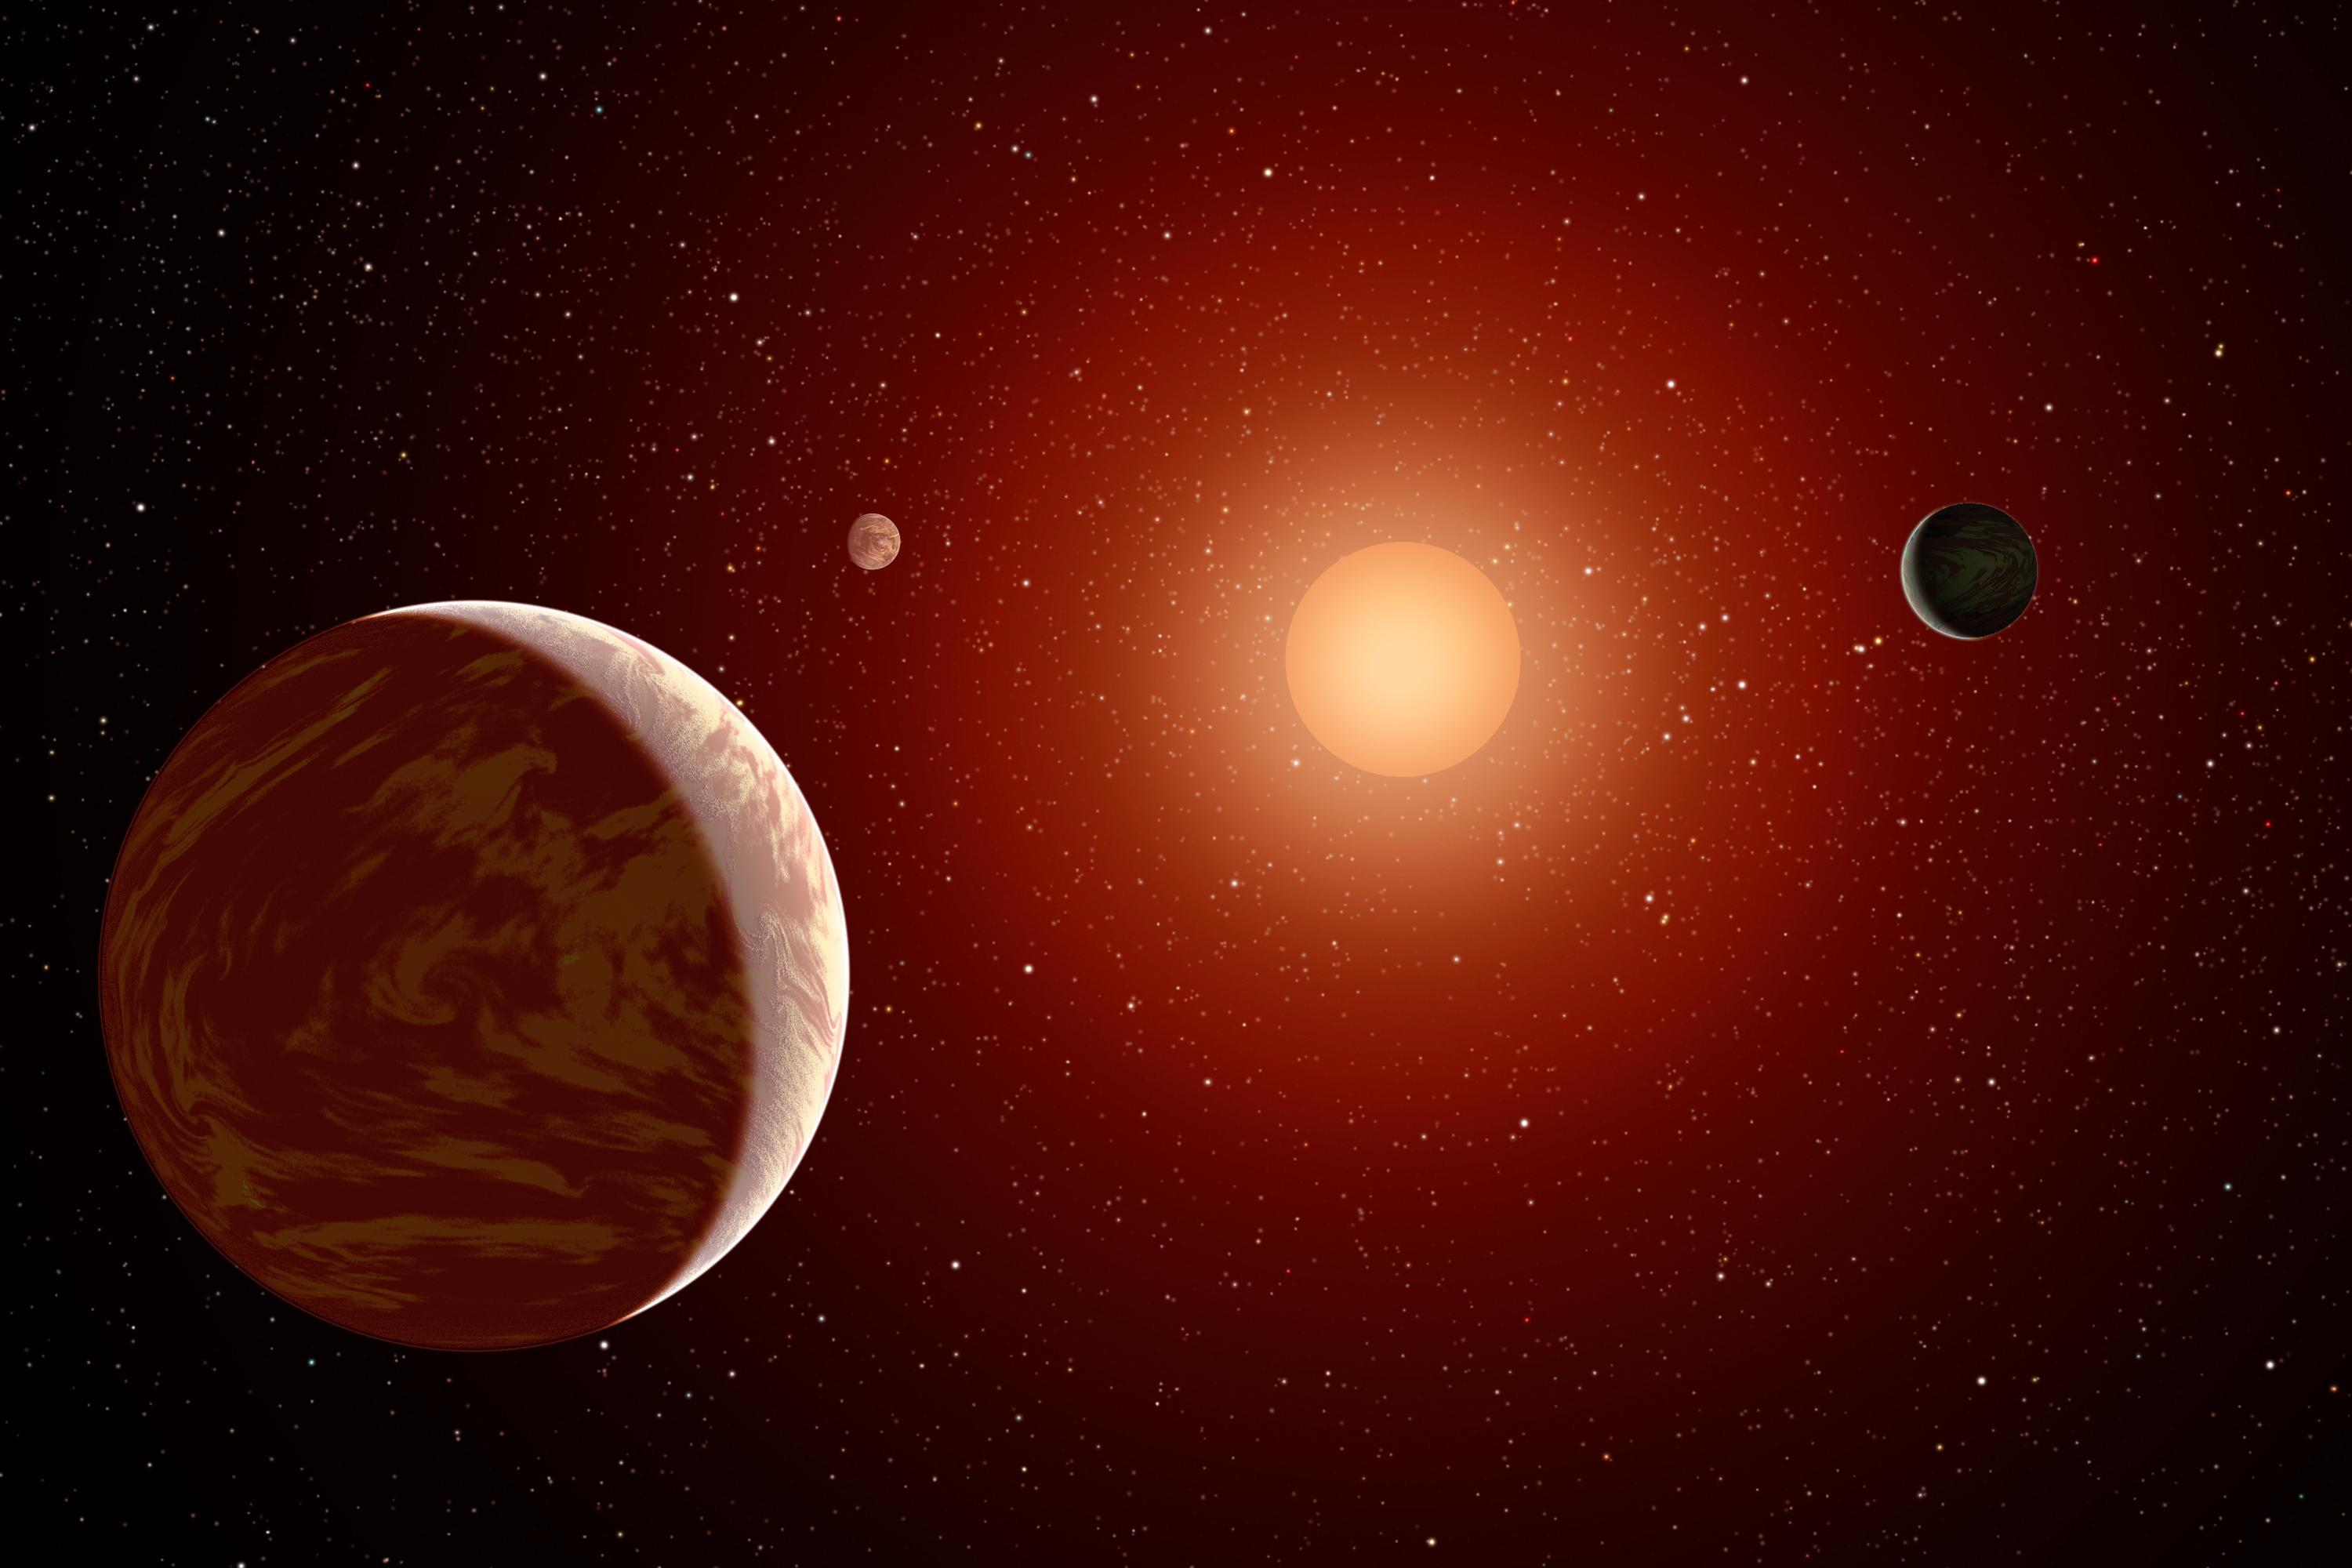 Planets_Under_a_Red_Sun.jpg